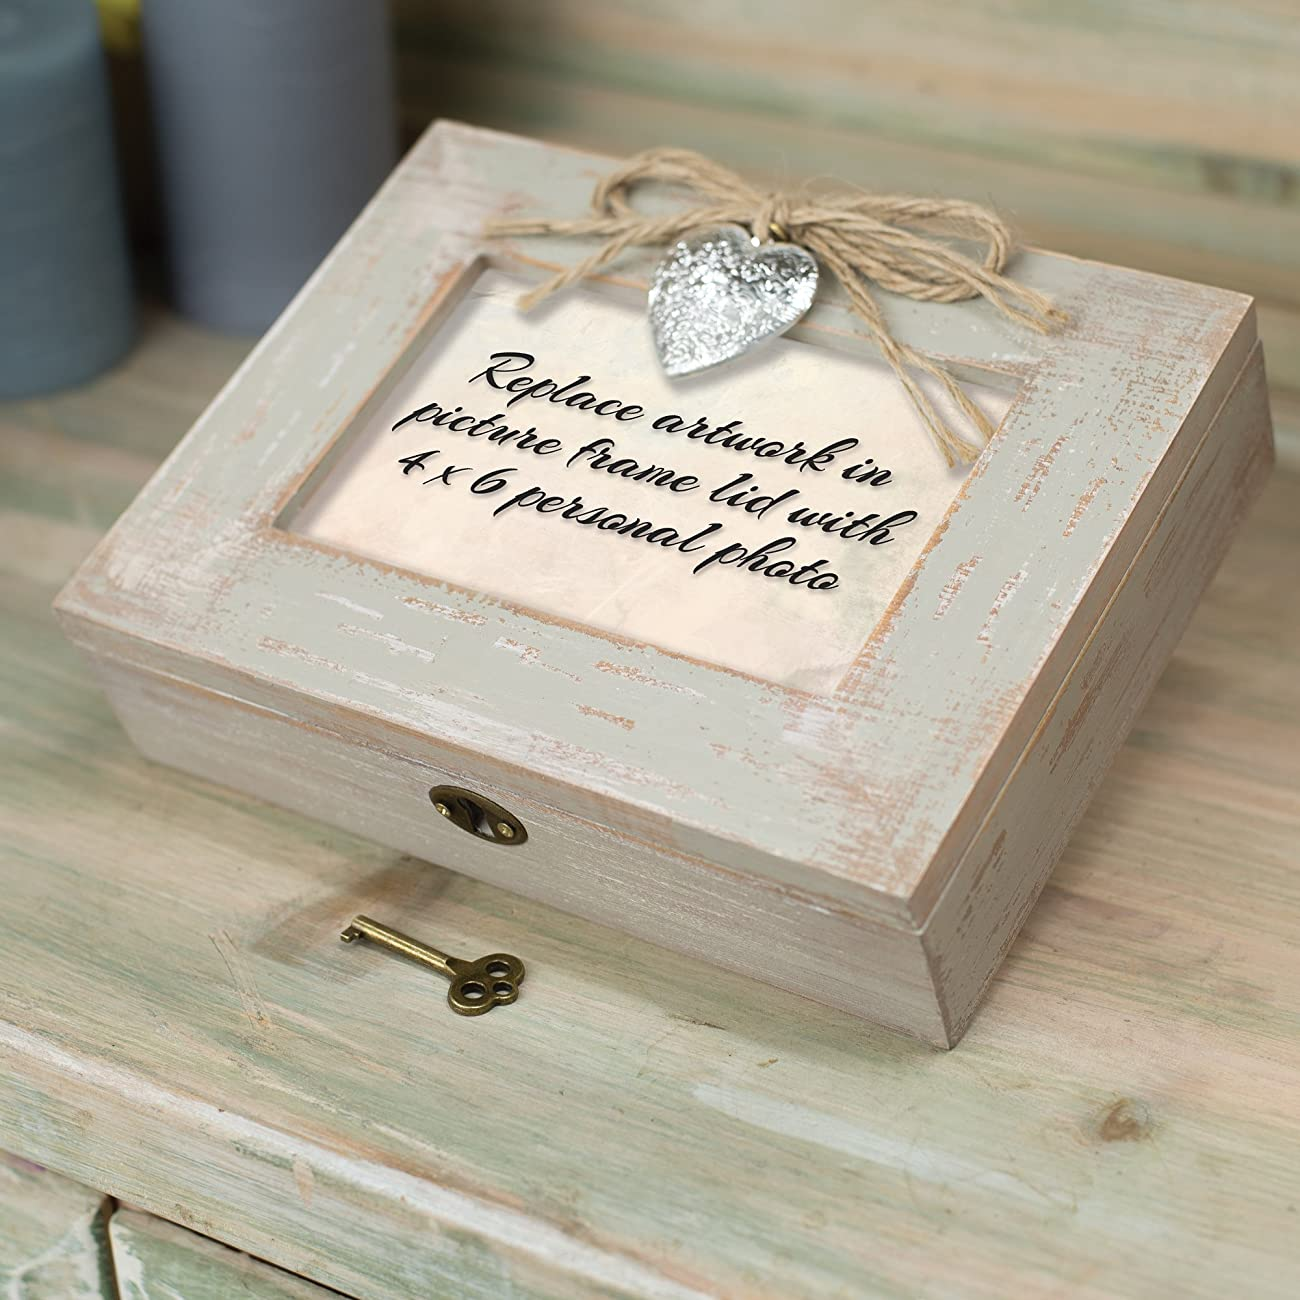 Be Still & Know That I am God Distressed Wood Locket Jewelry Music Box Plays Tune Amazing Grace 4